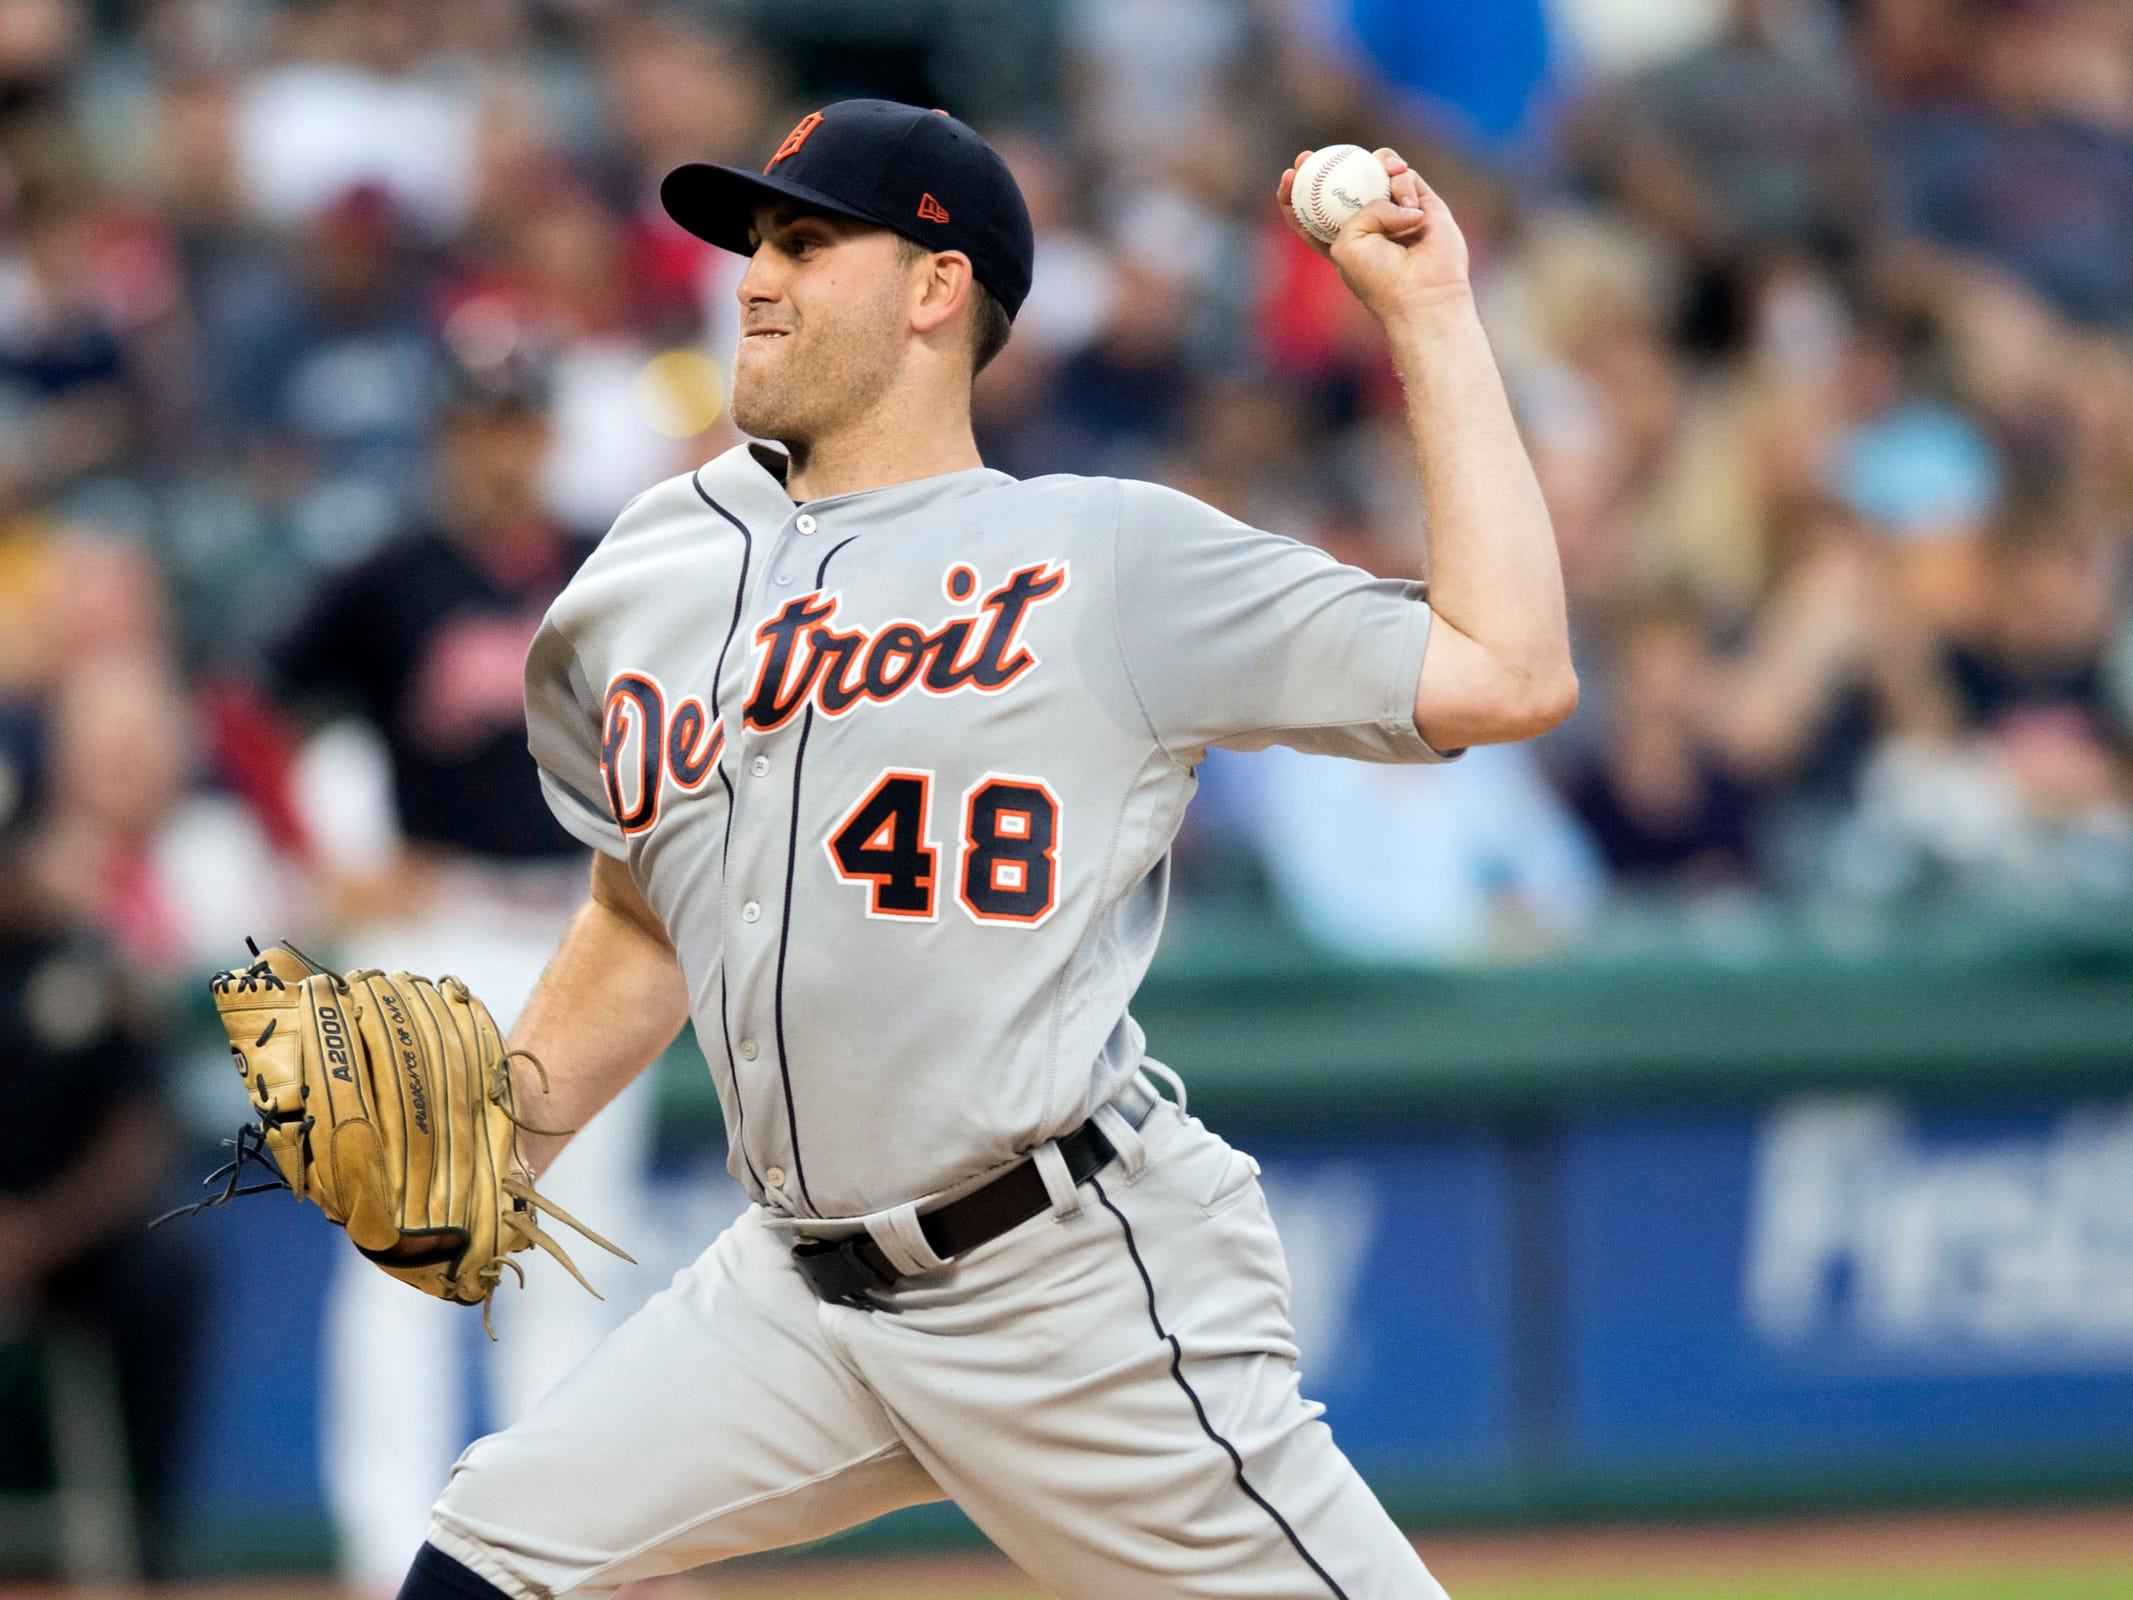 Detroit Tigers starting pitcher Matthew Boyd throws a pitch during the first inning against the Cleveland Indians at Progressive Field, Friday, Sept. 14, 2018, in Cleveland.